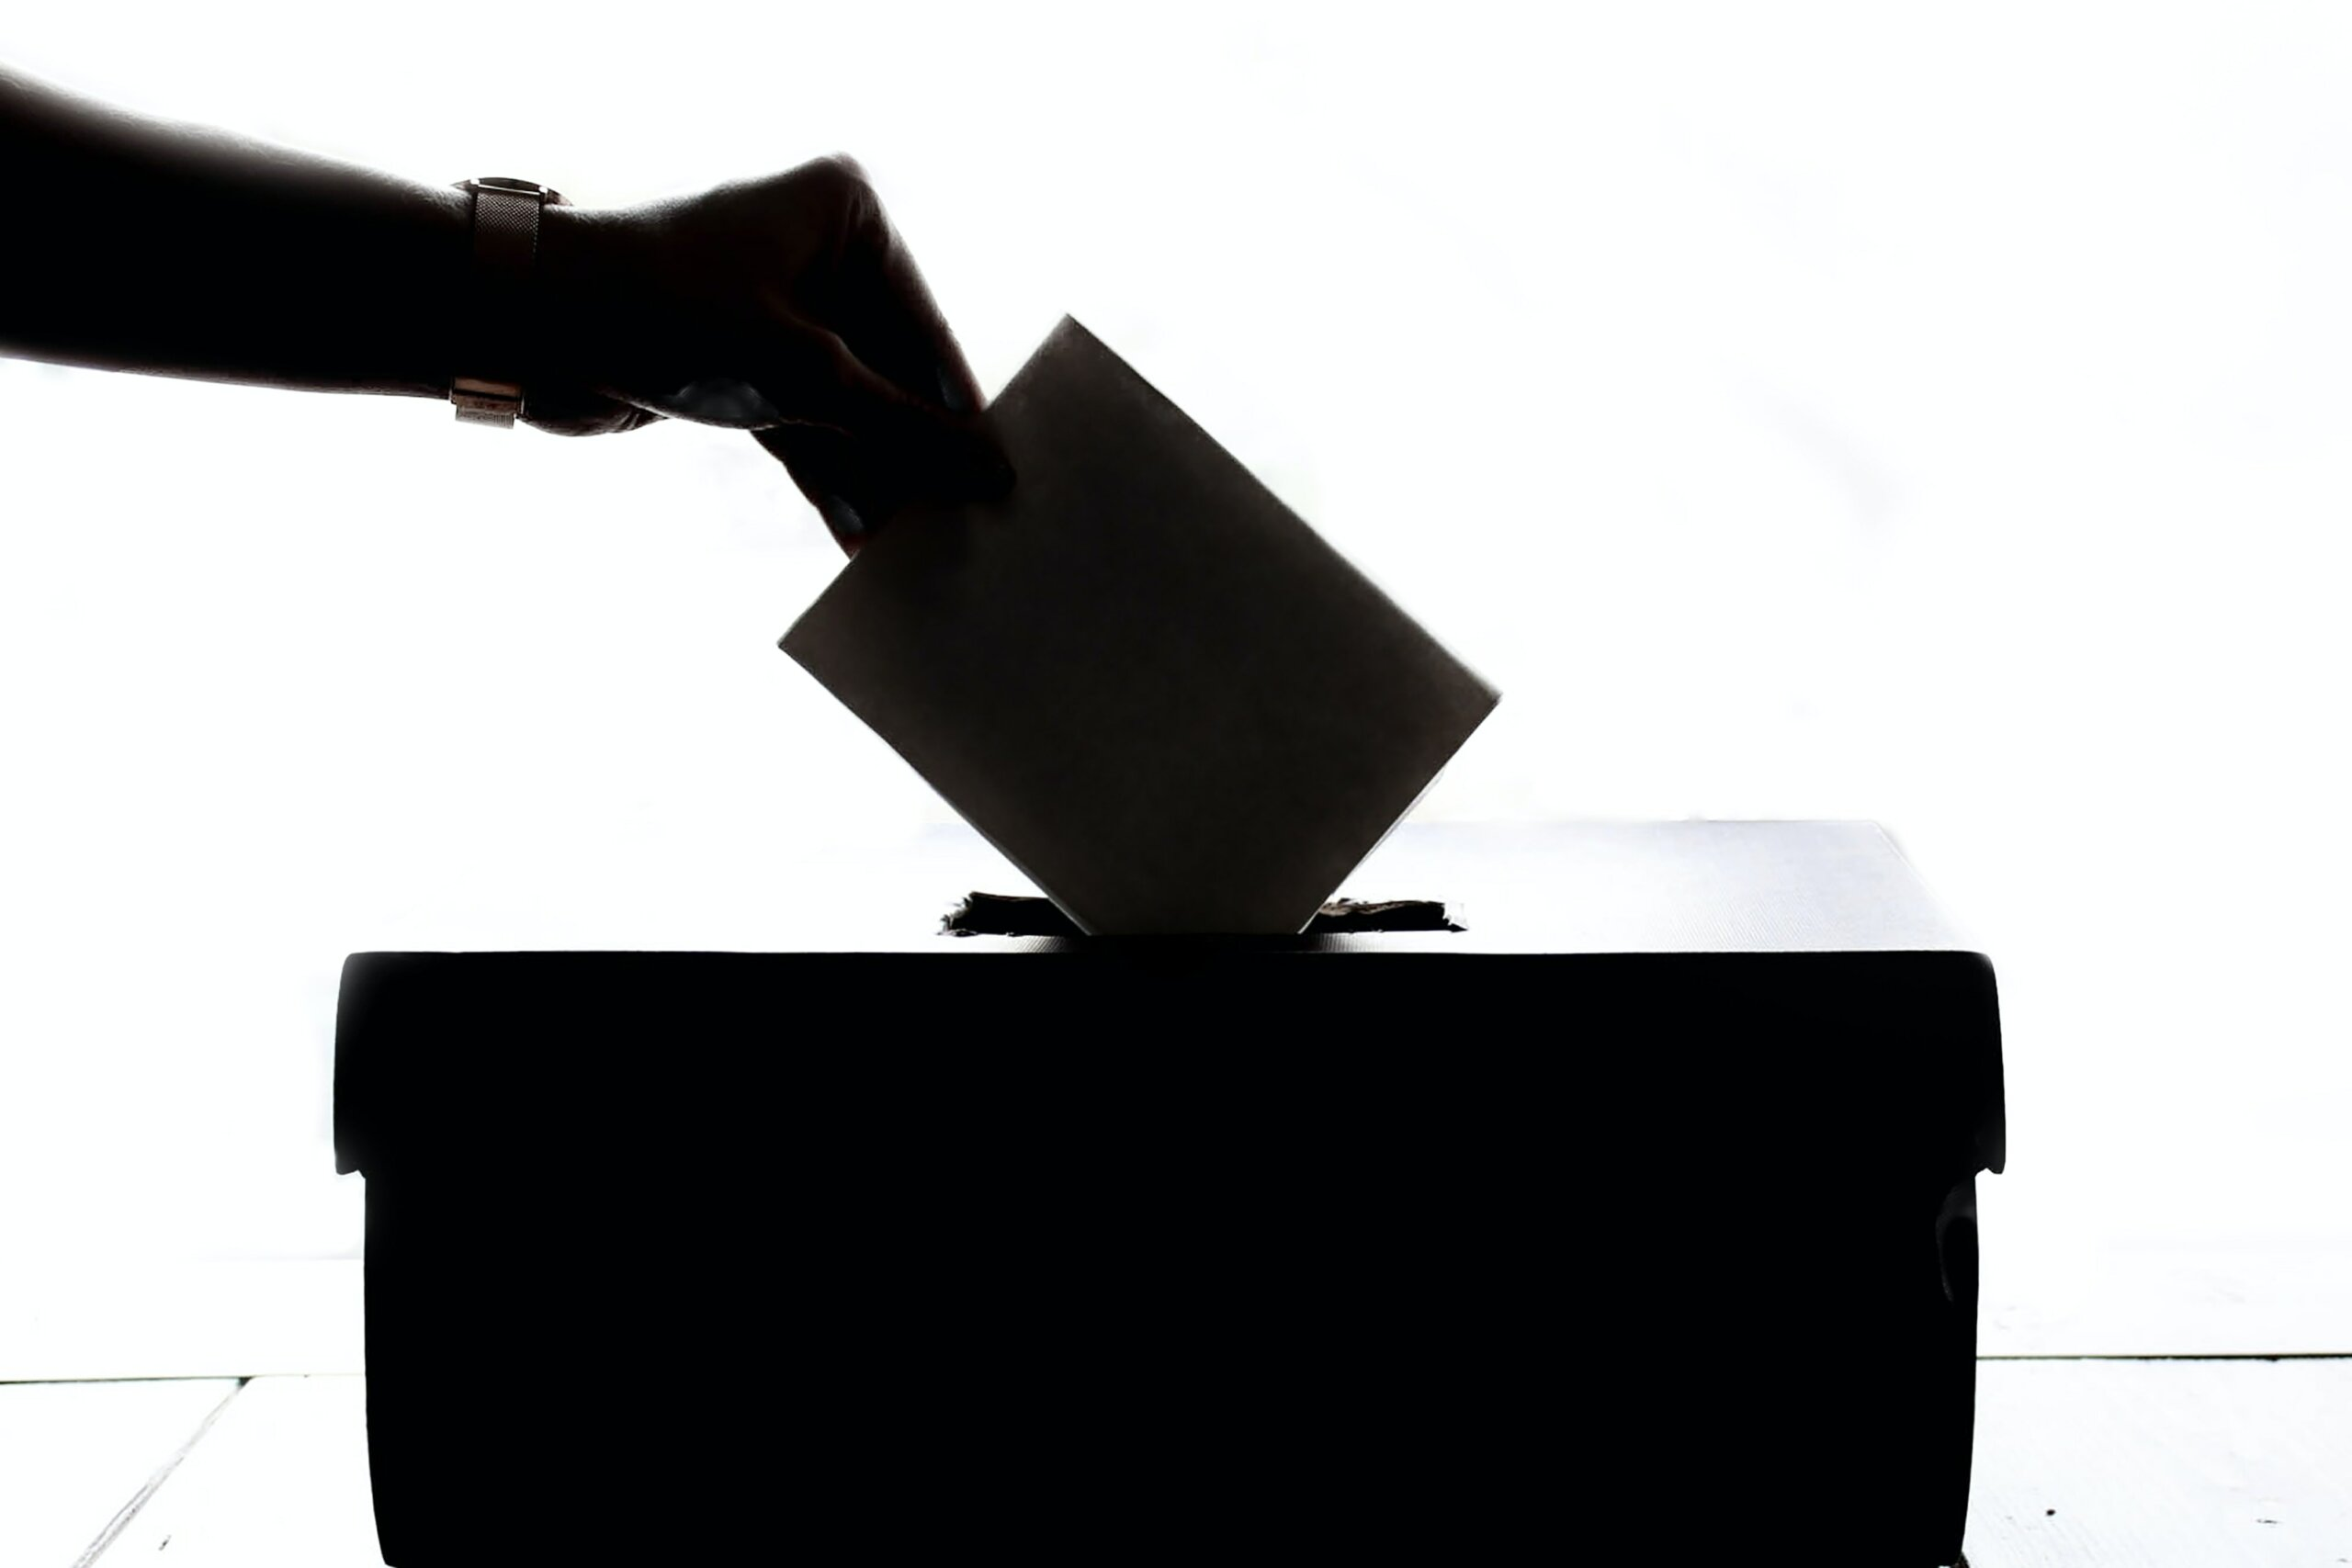 Image: someone submitting their voting ballot